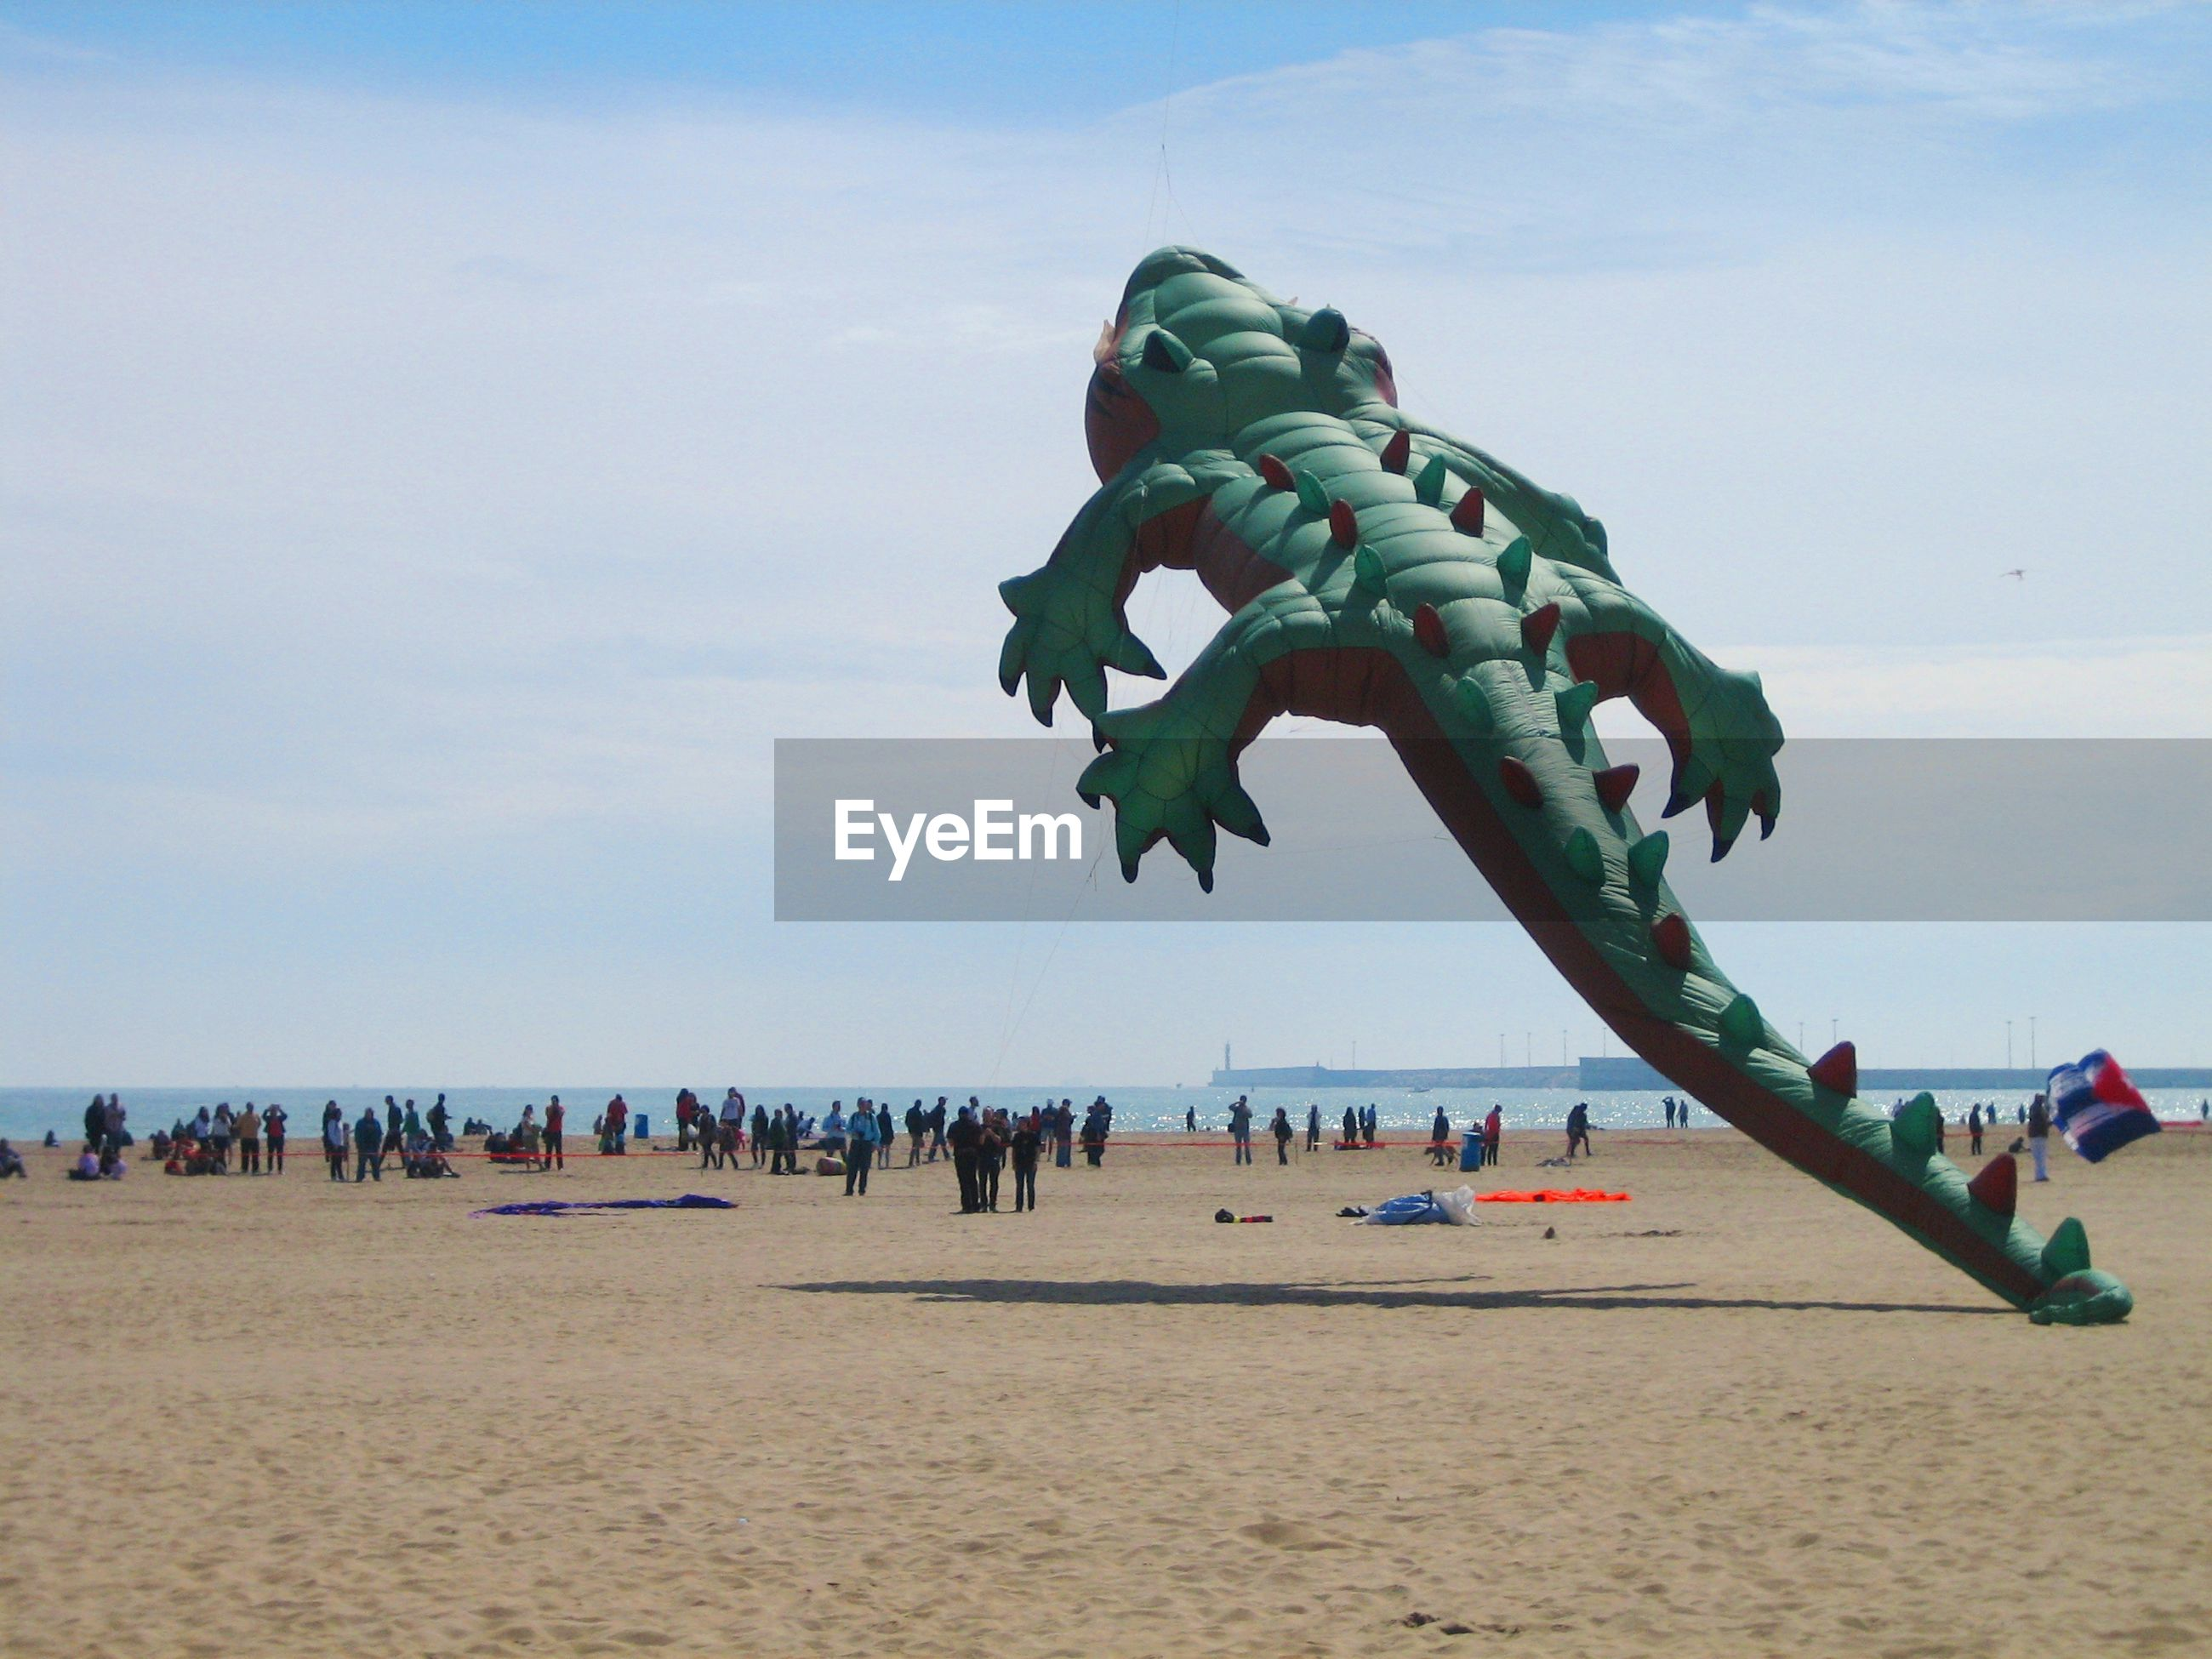 Crocodile shaped kite flying at beach during festival